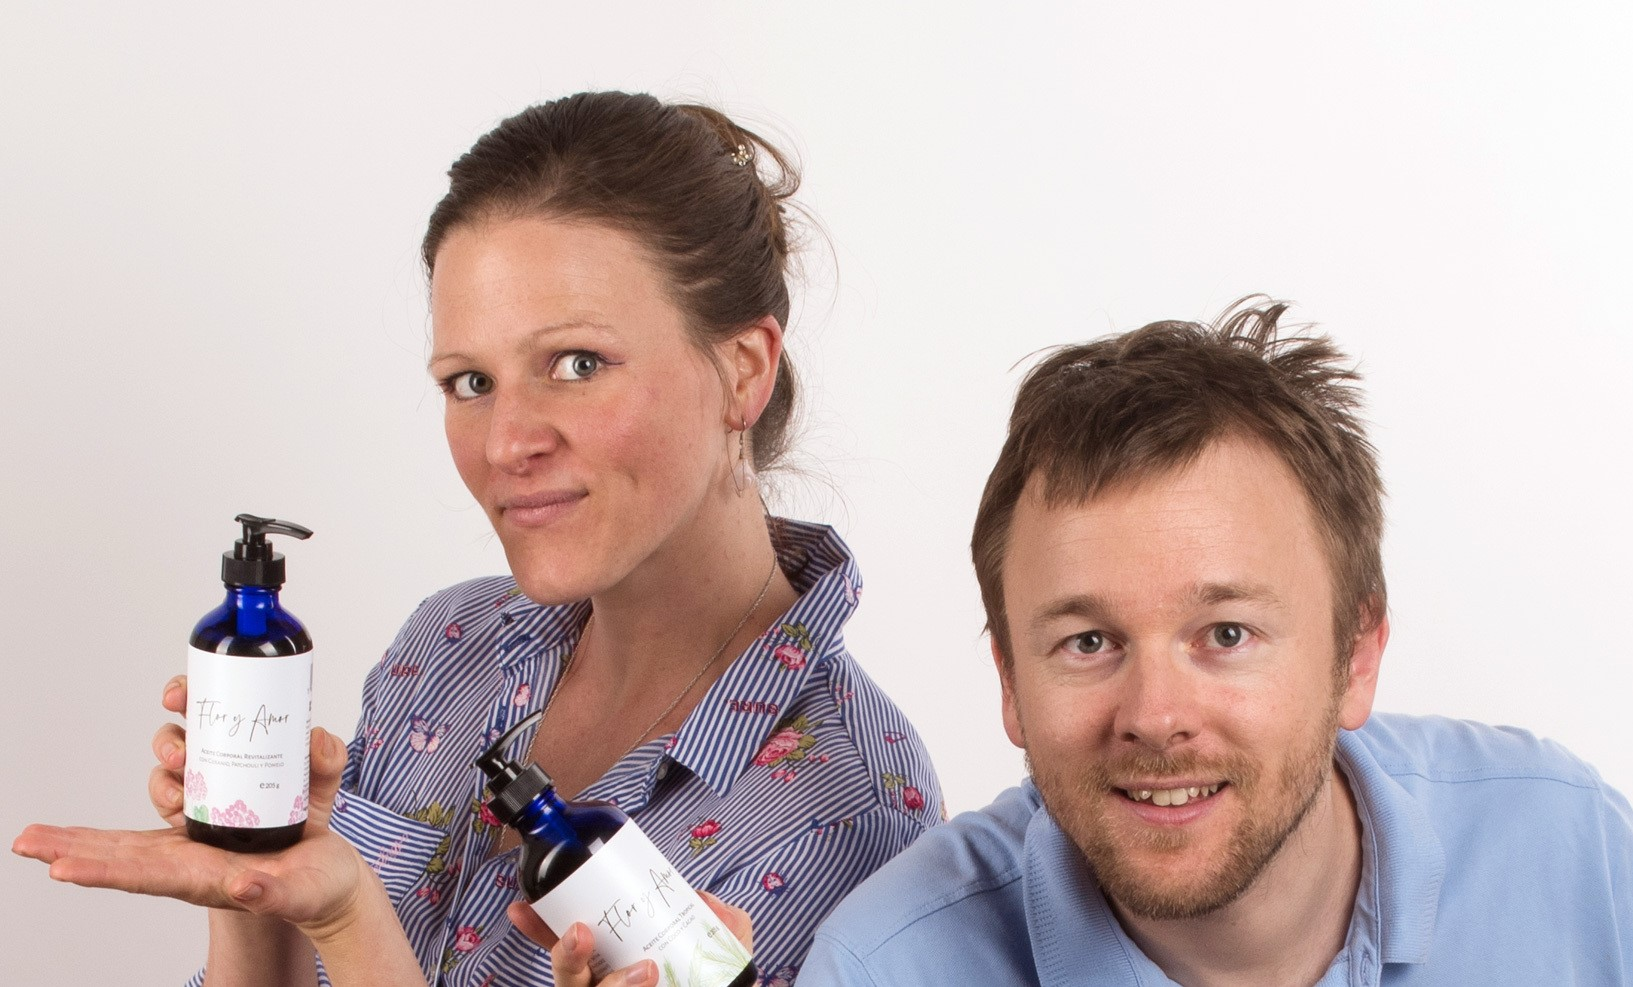 Charles and Kathryn Atkins, Flor y Amor - sustainable cosmetics products